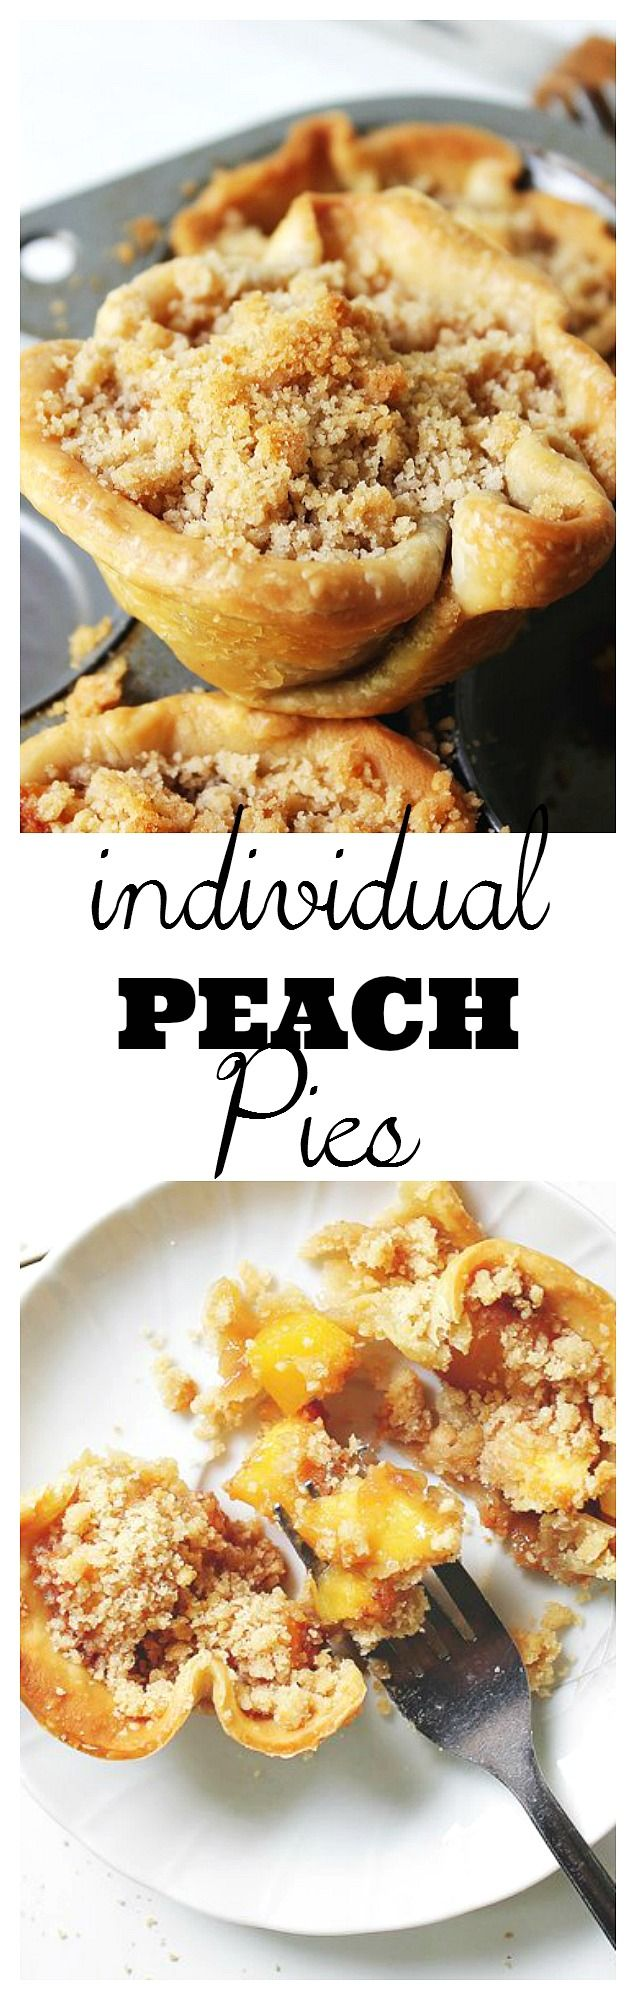 Individual pies filled with an extraordinary pie filling of diced fresh peaches, ginger, brown sugar, and finished off with a crumb topping.